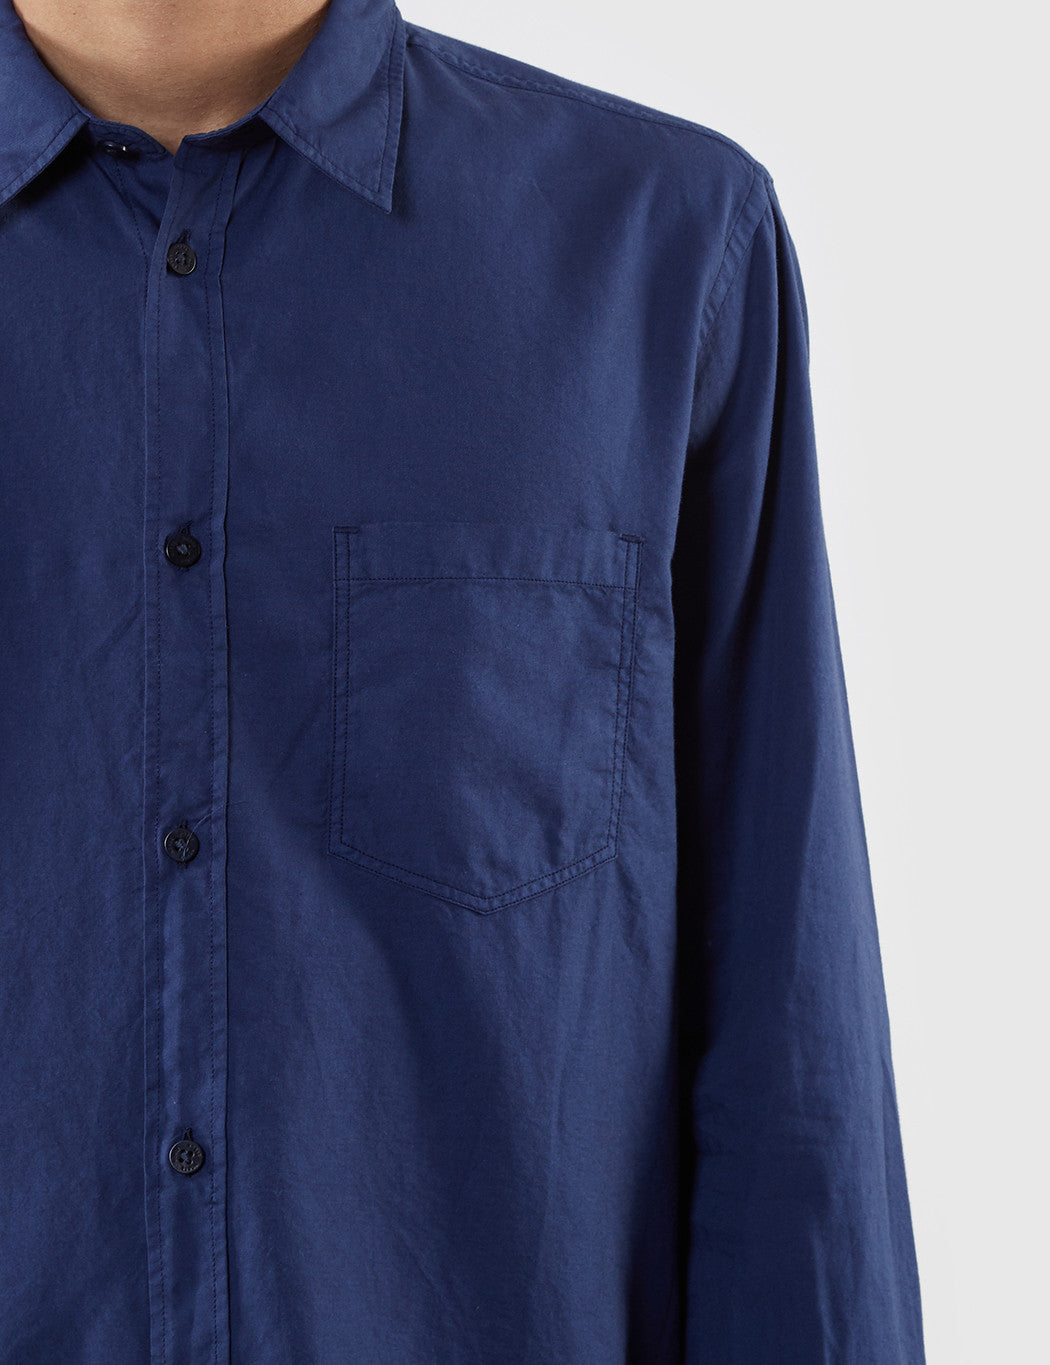 Norse Projects Anton Light Oxford Shirt (Overdyed) - Navy Blue